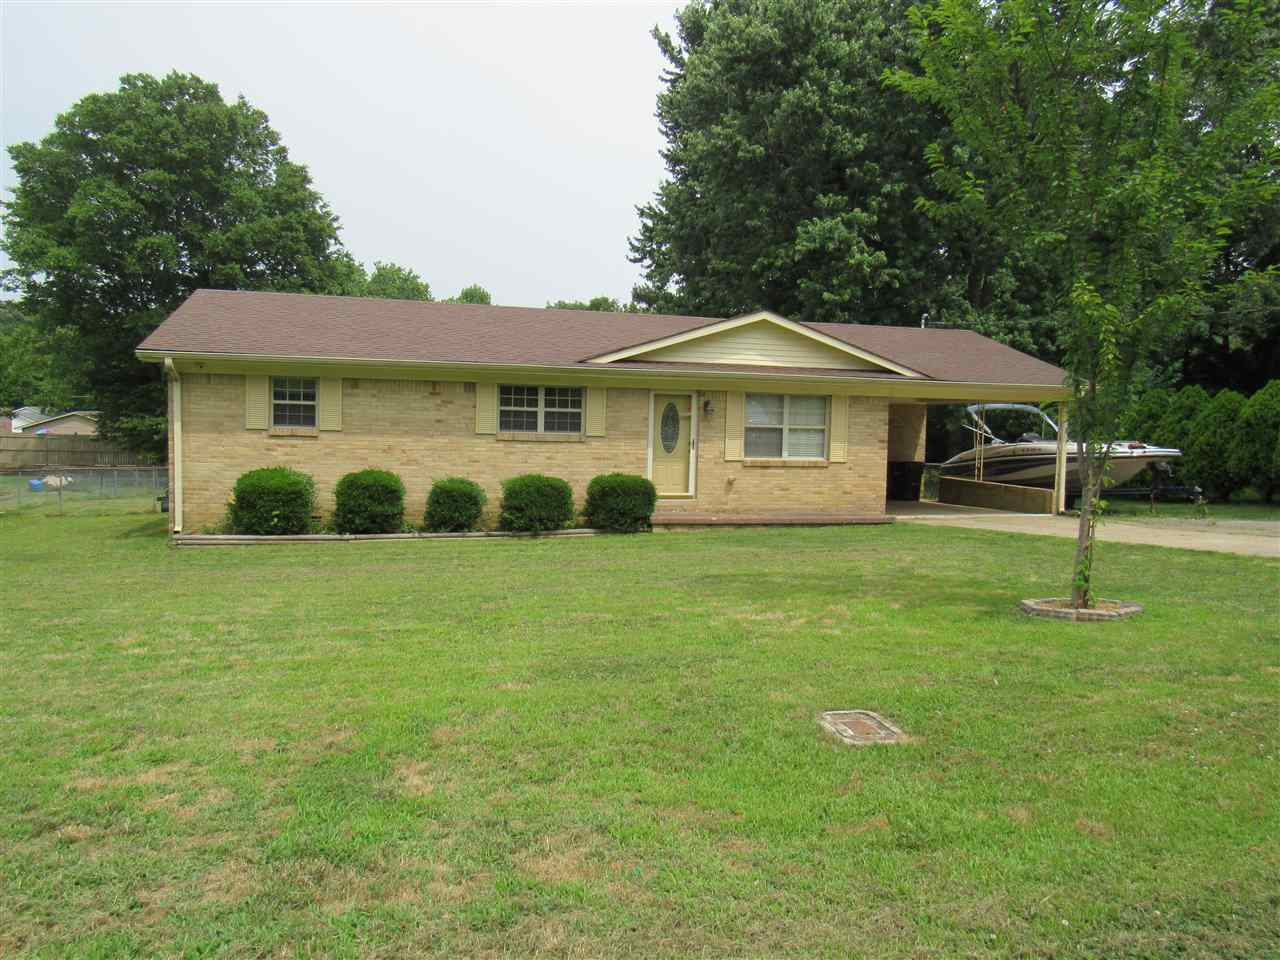 62 Rose Dr,Dyersburg,Tennessee 38024,3 Bedrooms Bedrooms,1 BathroomBathrooms,Residential,62 Rose Dr,188556